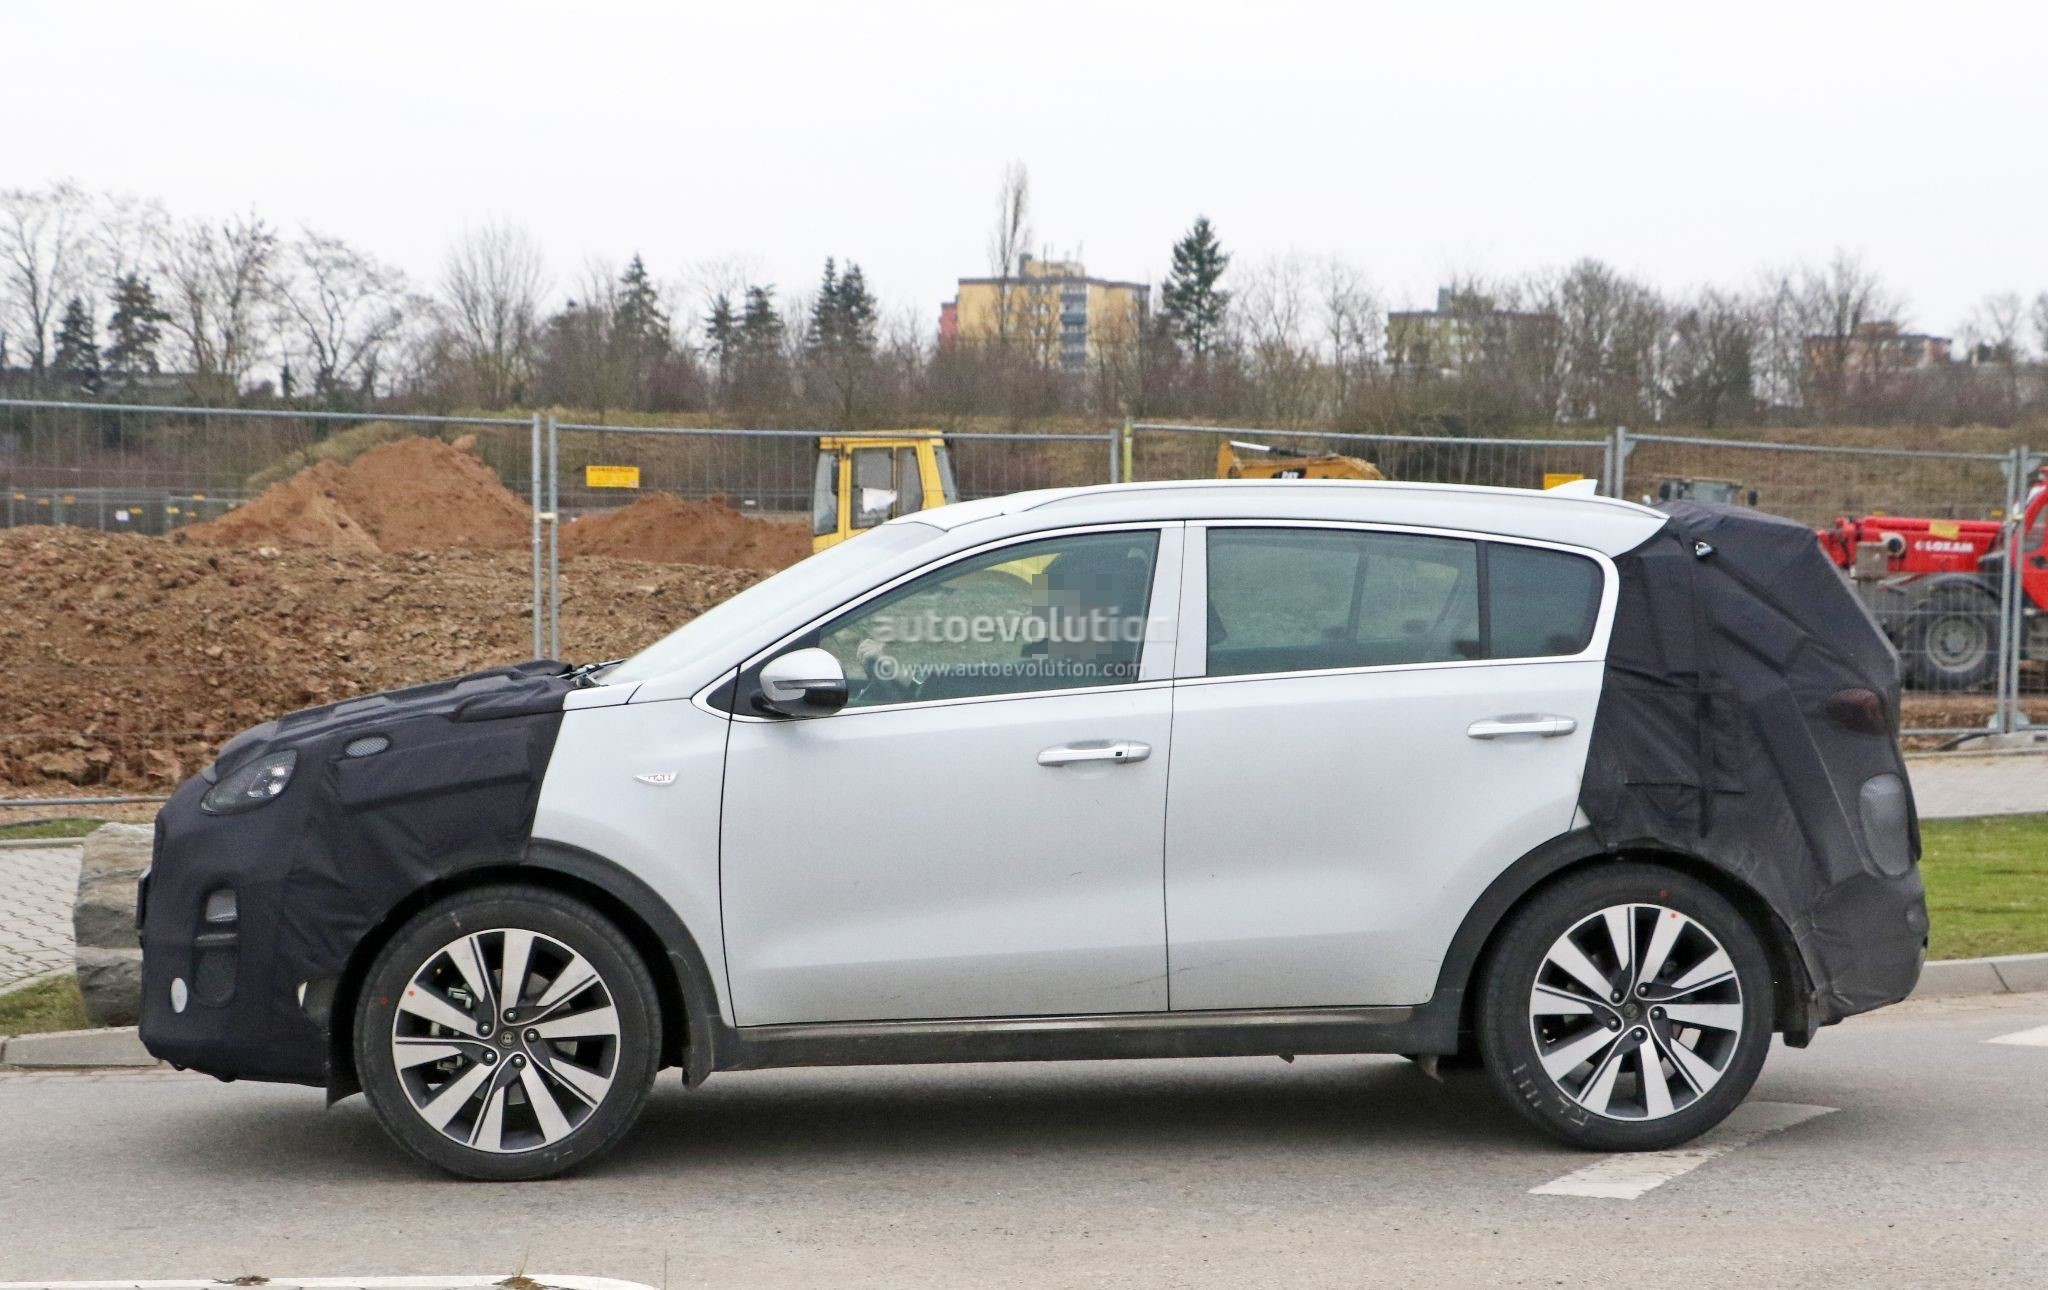 2019-kia-sportage-spied-testing-in-germany-looks-almost-ready-for-production_8